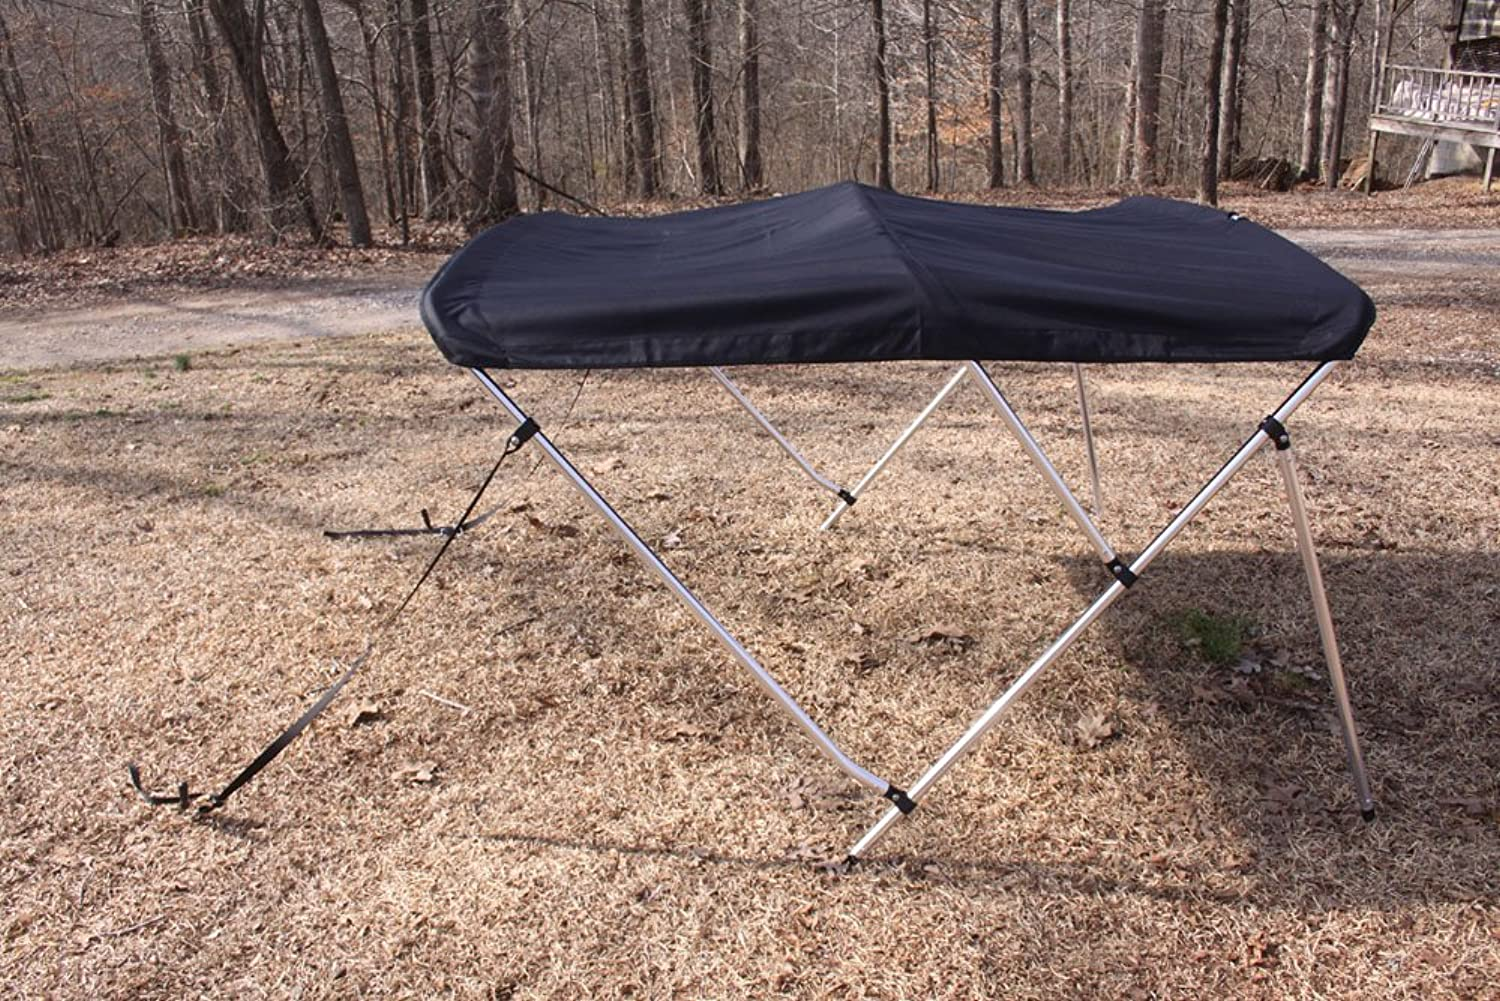 BLACK VORTEX BRAND 3 BOW BIMINI 6' LONG, 6166  WIDE, 46  HIGH, COMPLETE KIT, FRAME, CANOPY, AND HARDWARE (FAST SHIPPING  1 TO 4 BUSINESS DAY DELIVERY)